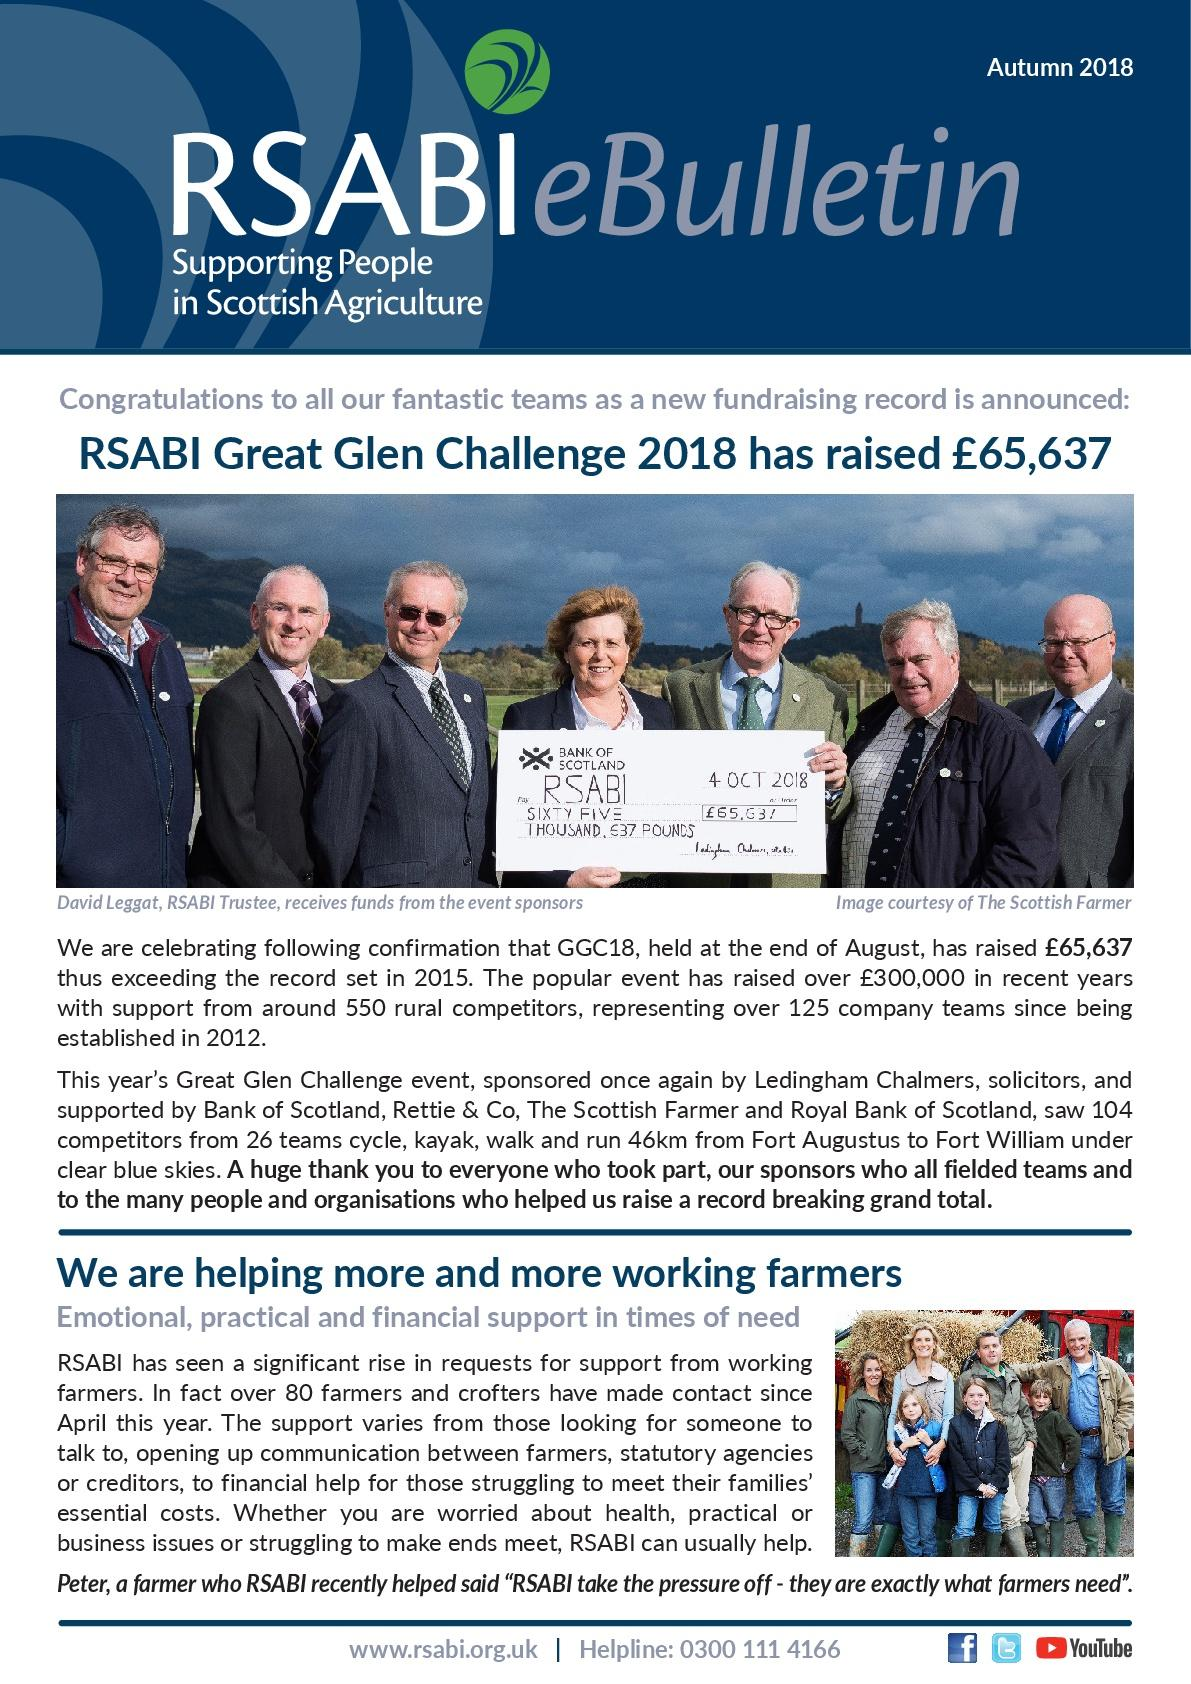 RSABI eBulletin Autumn 2018